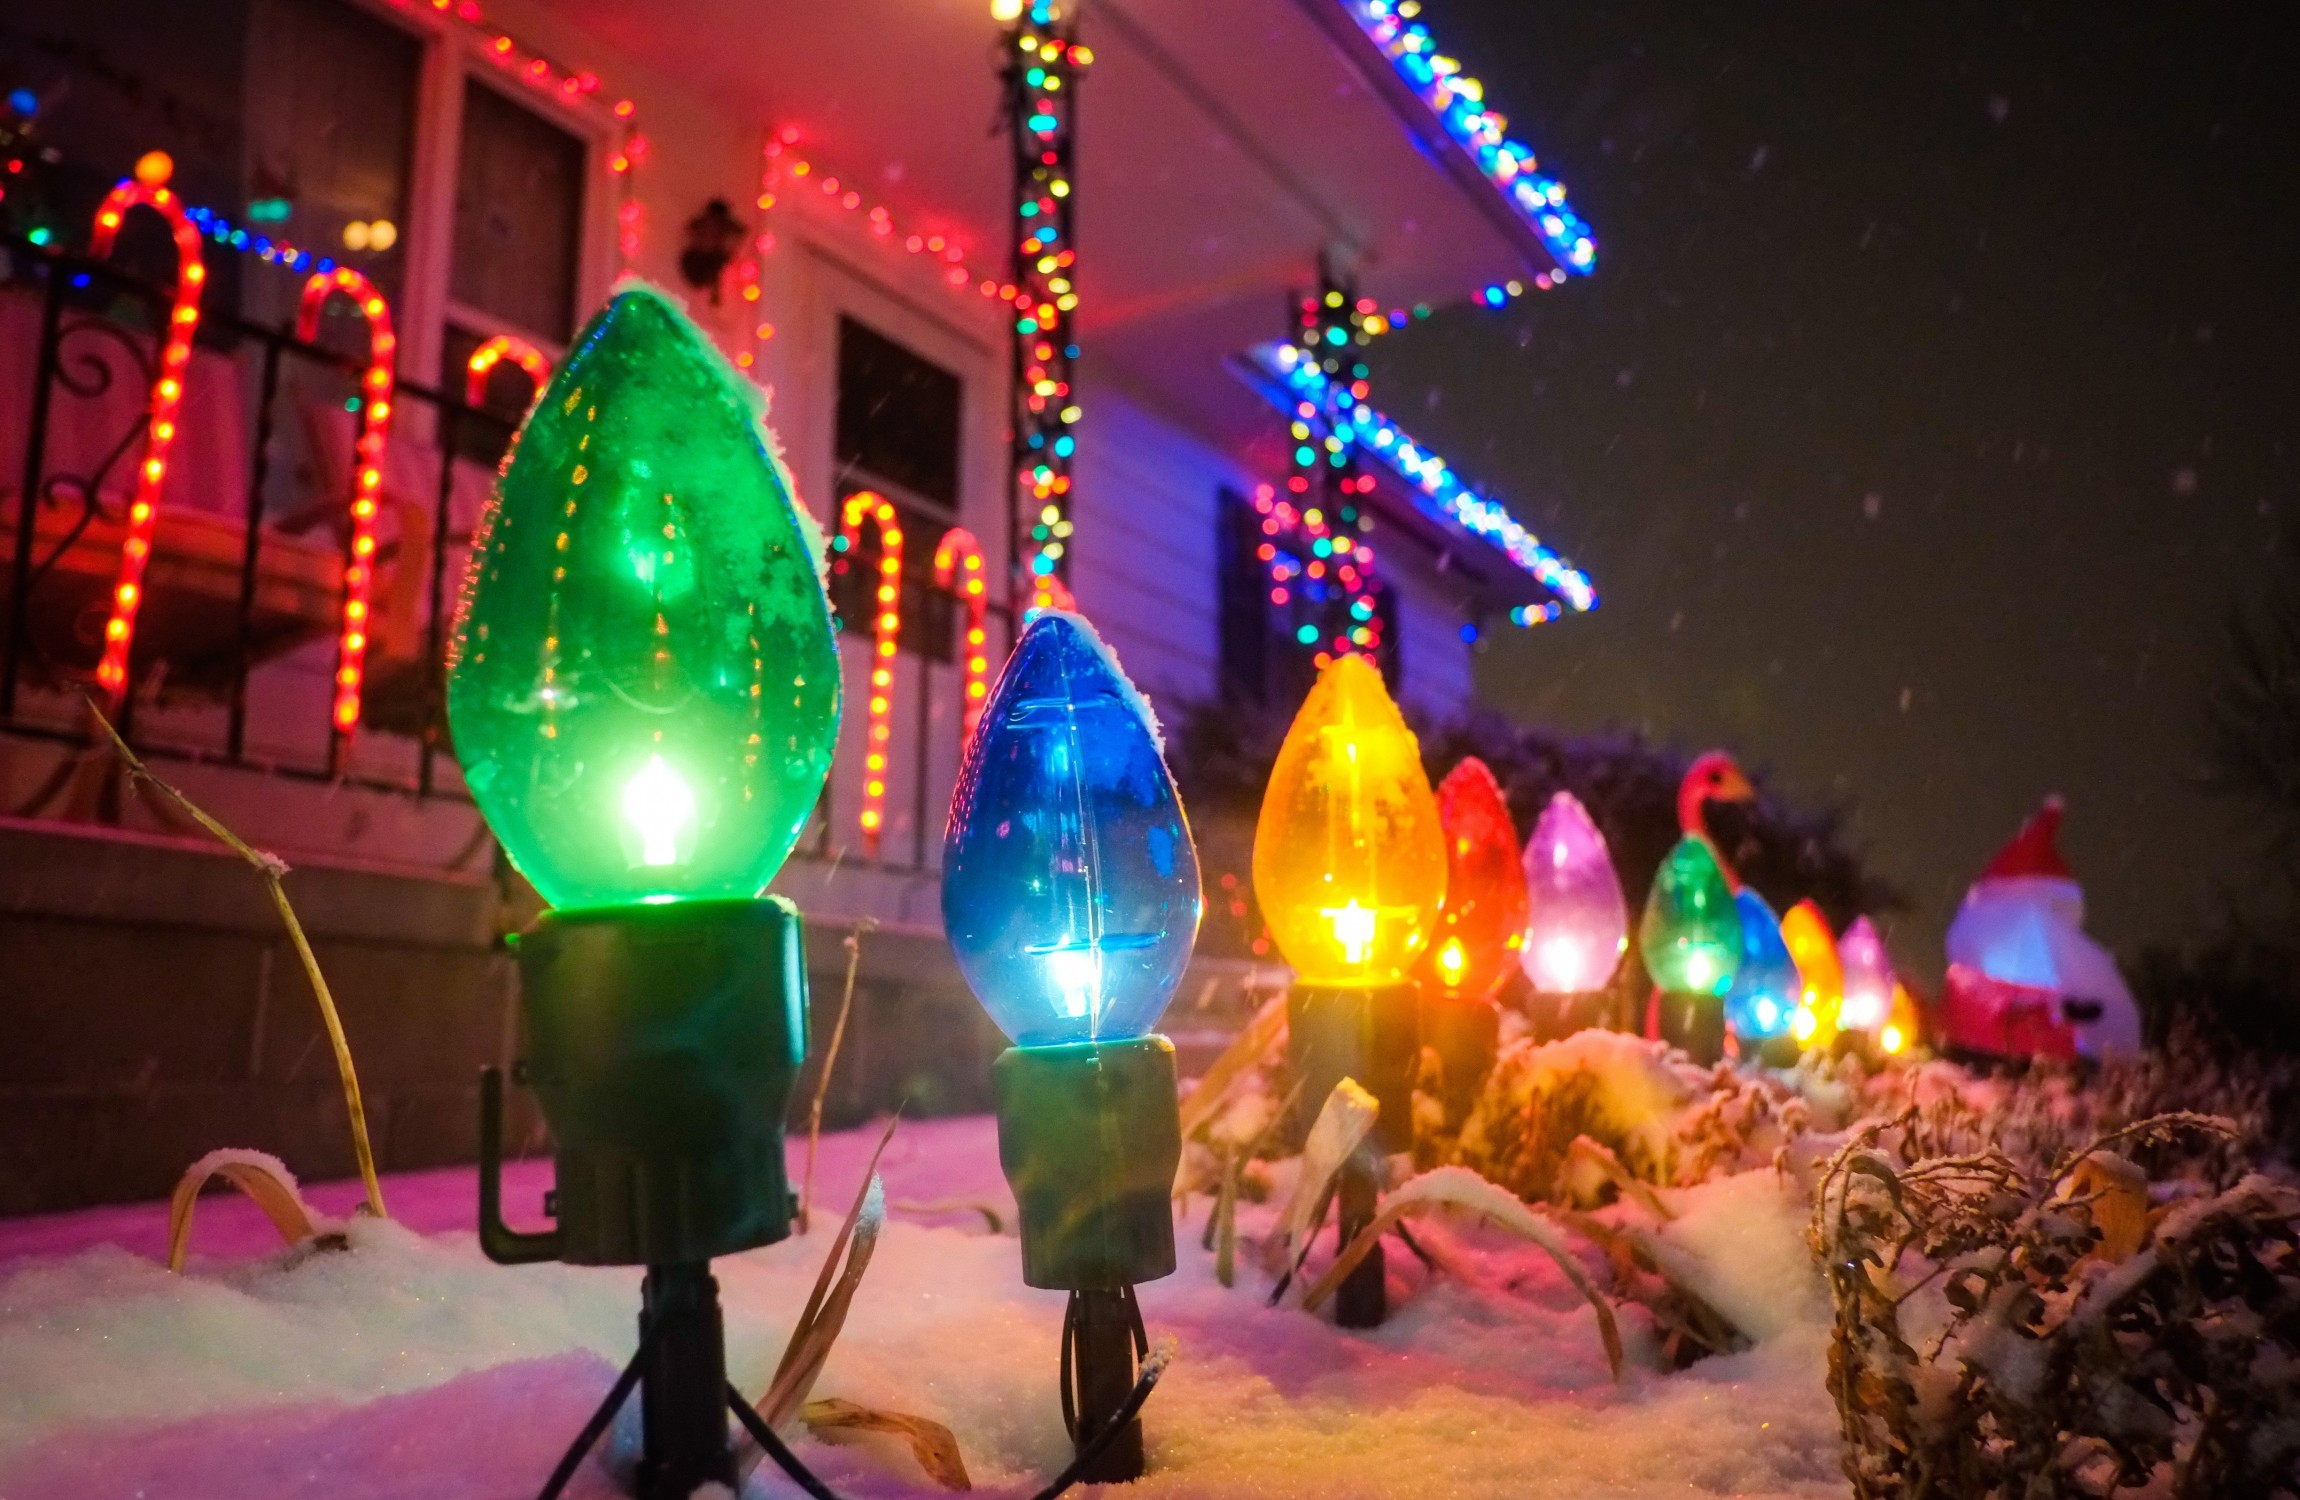 Help How Do I Set Up Outdoor Christmas Lights Without Disaster